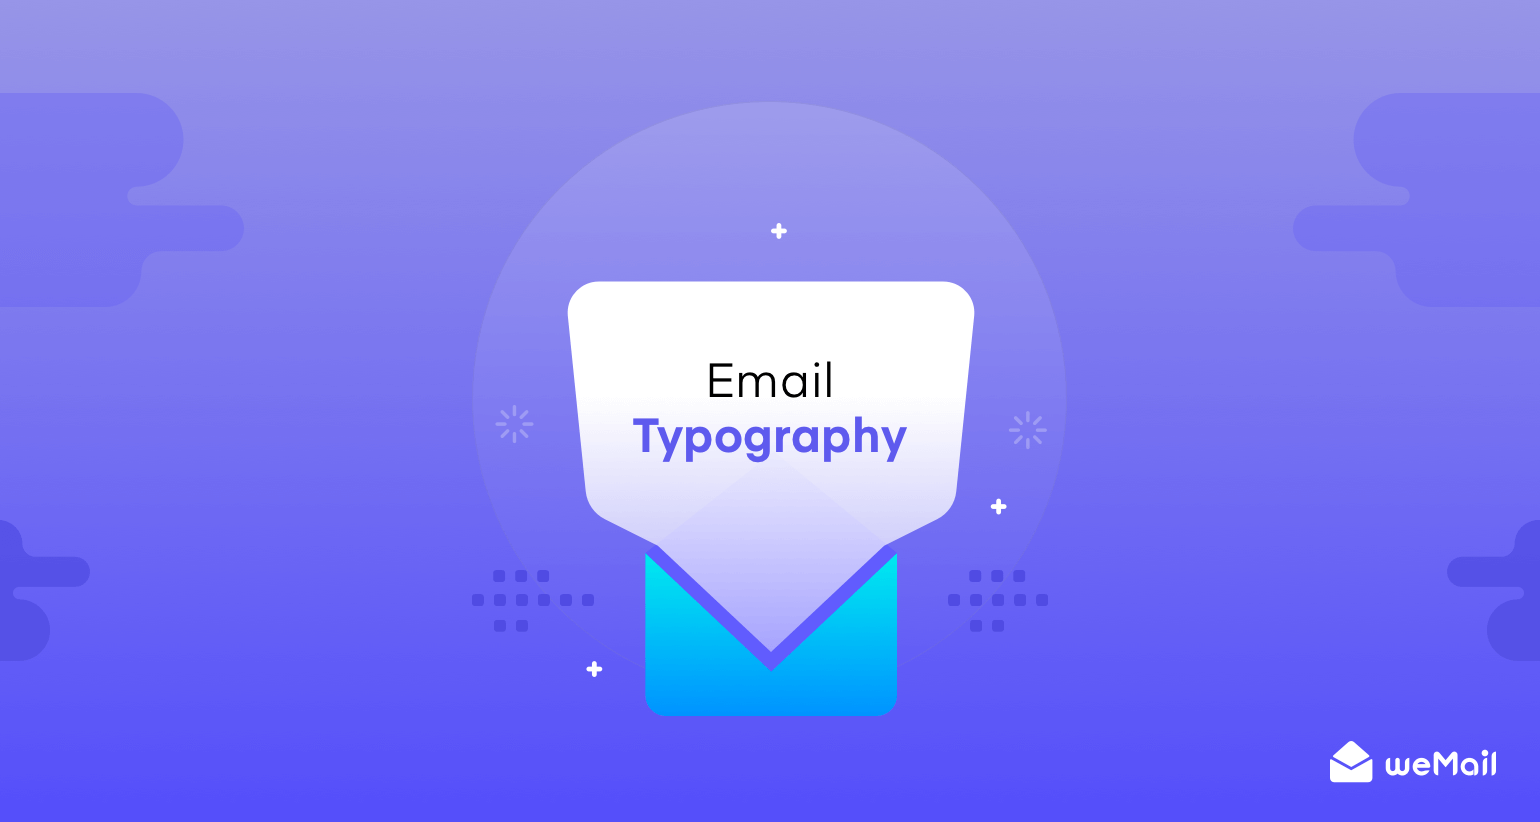 Email Typography